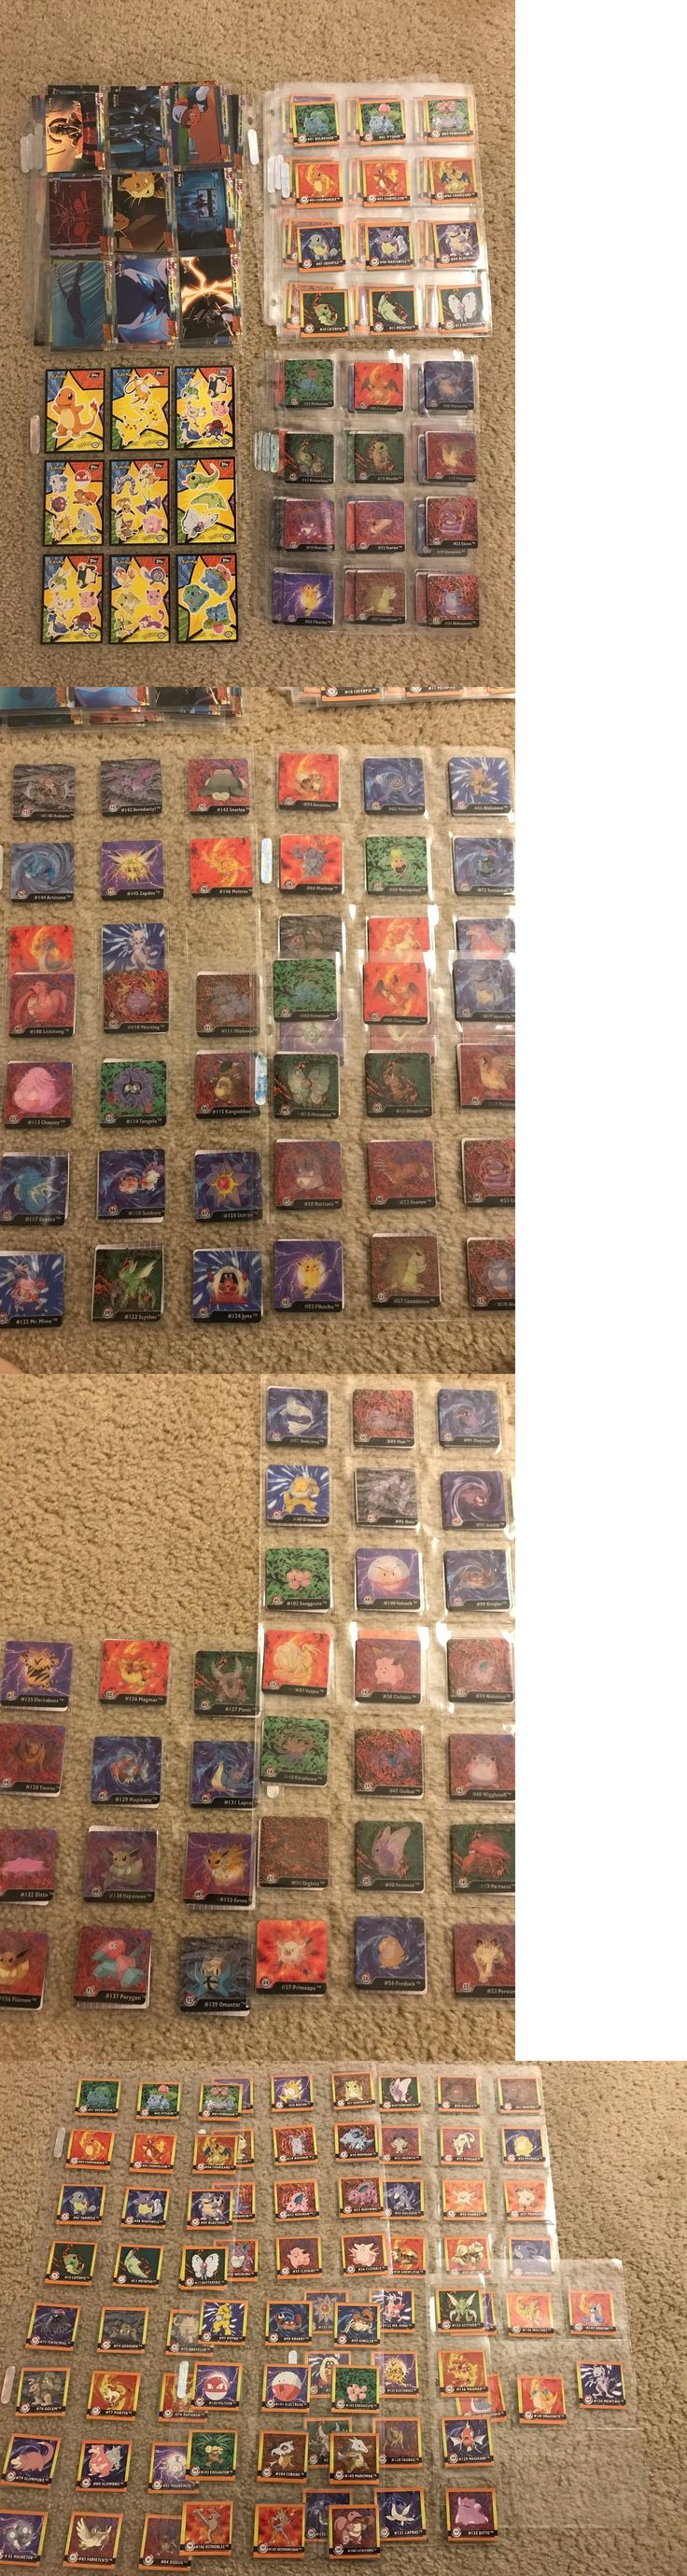 Pok mon Complete Sets 104046: Huge Pokemon Topps Artbox Card Sticker Collection Original 151 Complete Sets Etc -> BUY IT NOW ONLY: $95 on eBay!